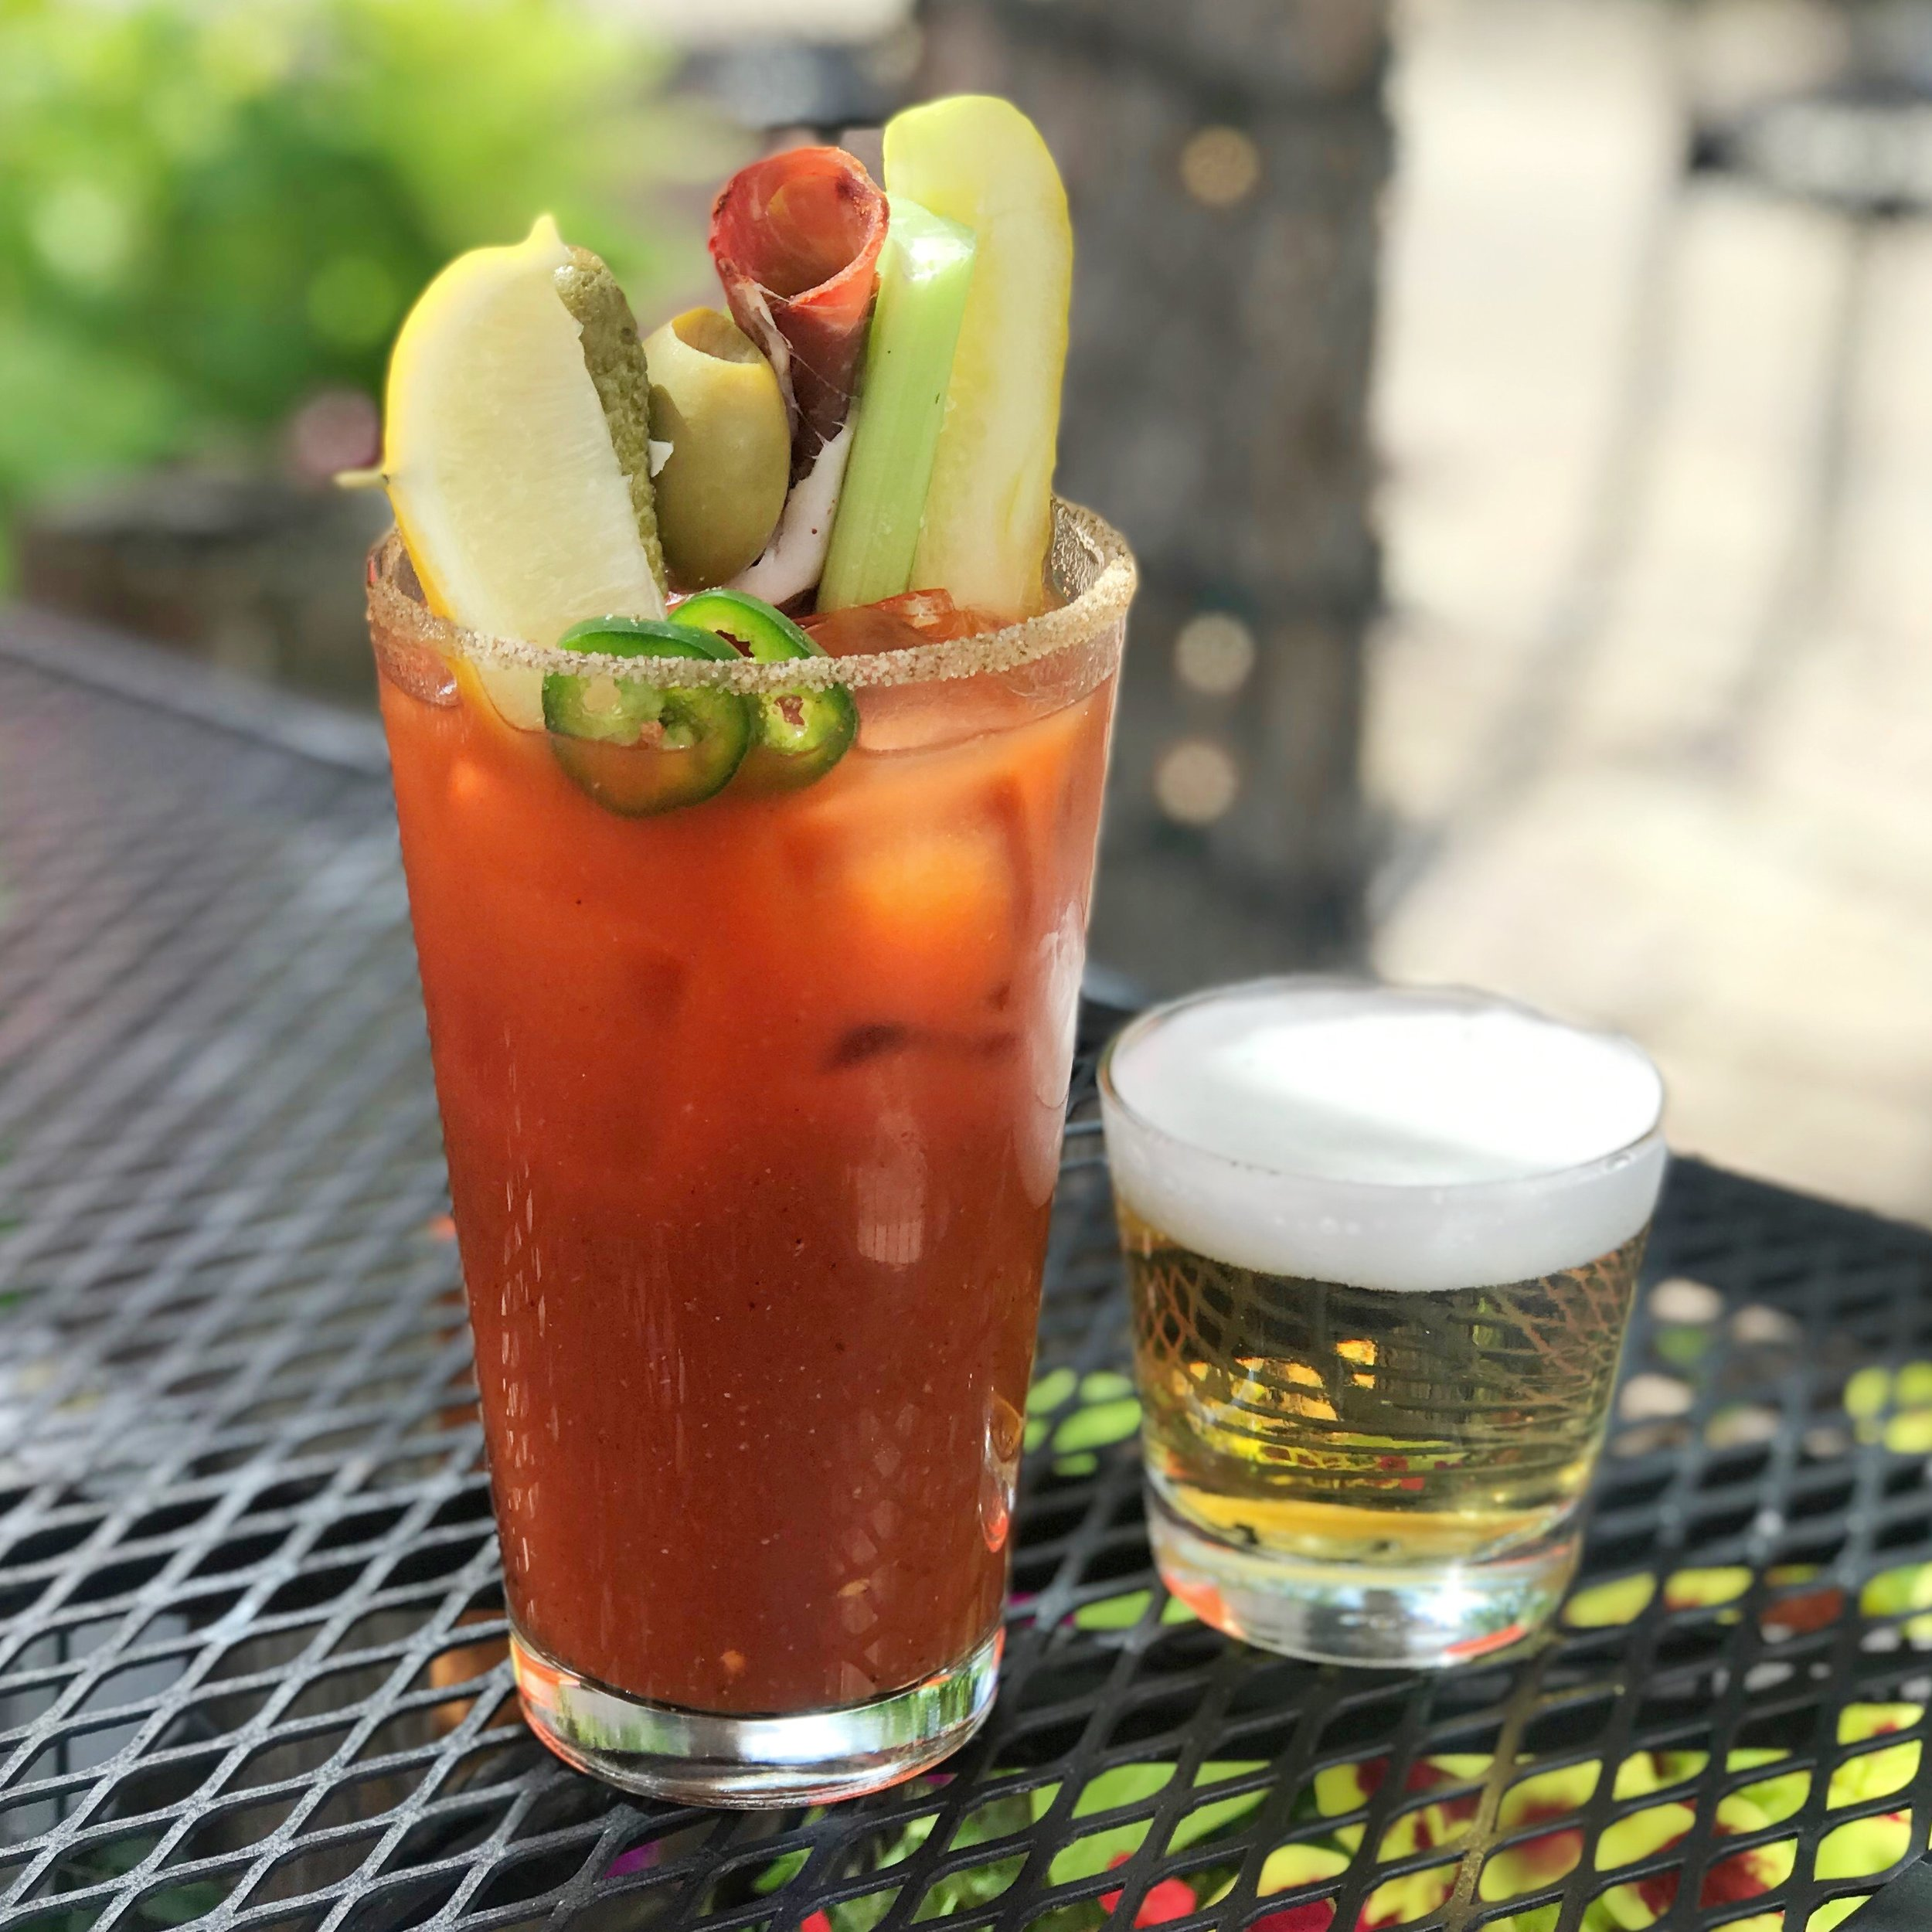 Fennel Bloody Mary - PAT'S TAP